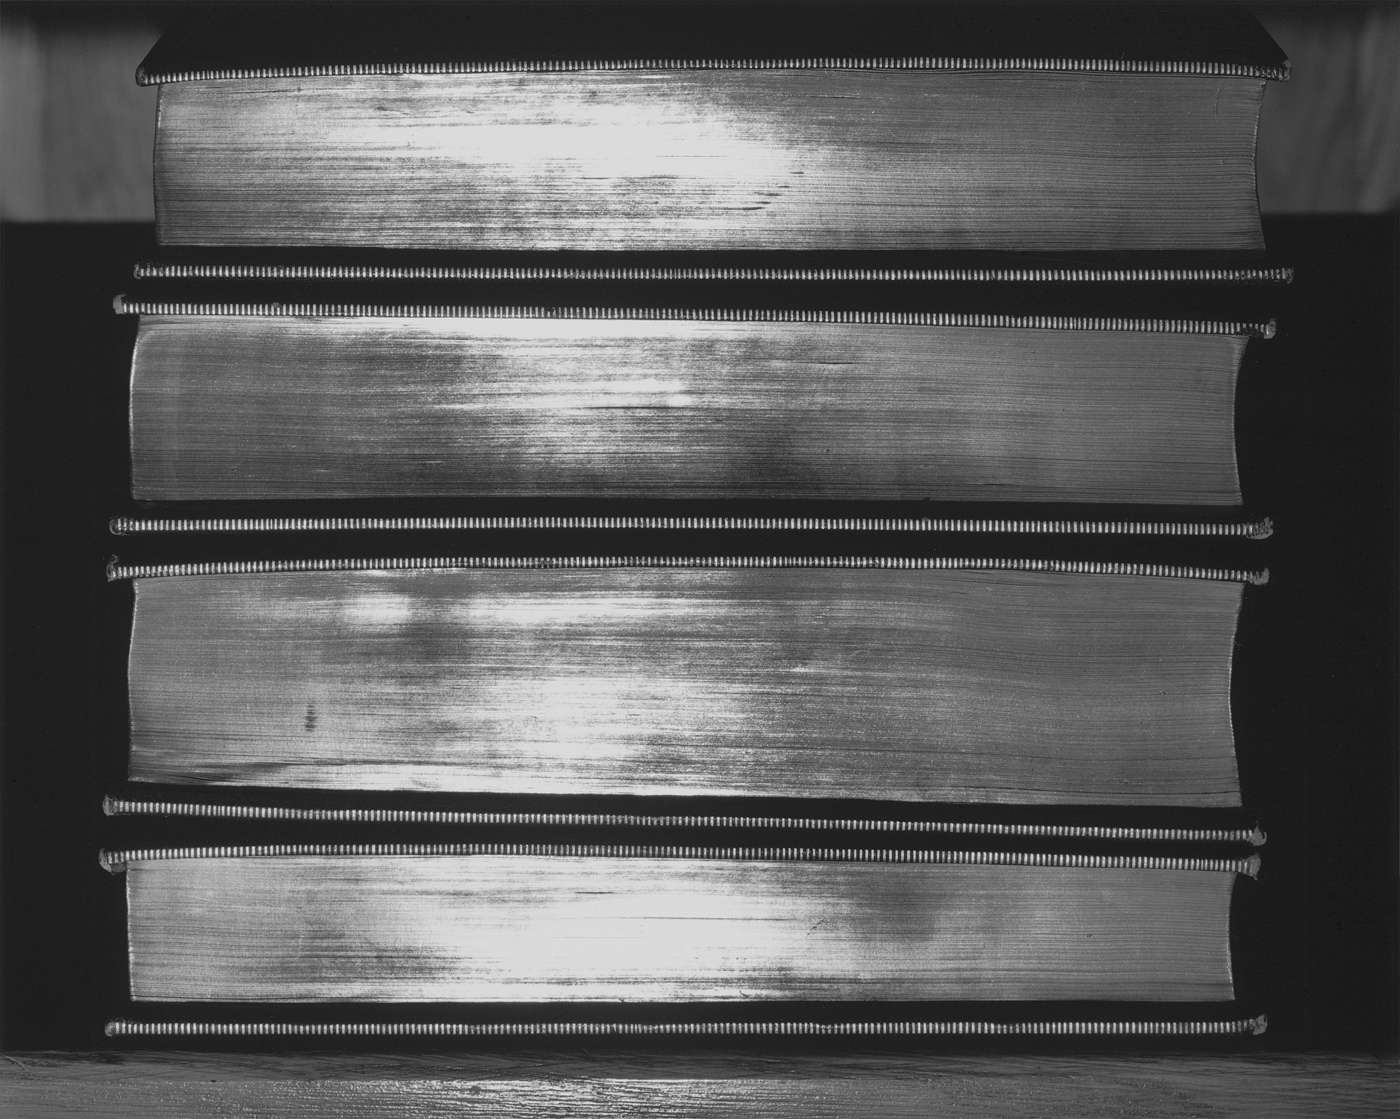 Shiny Books, 2000